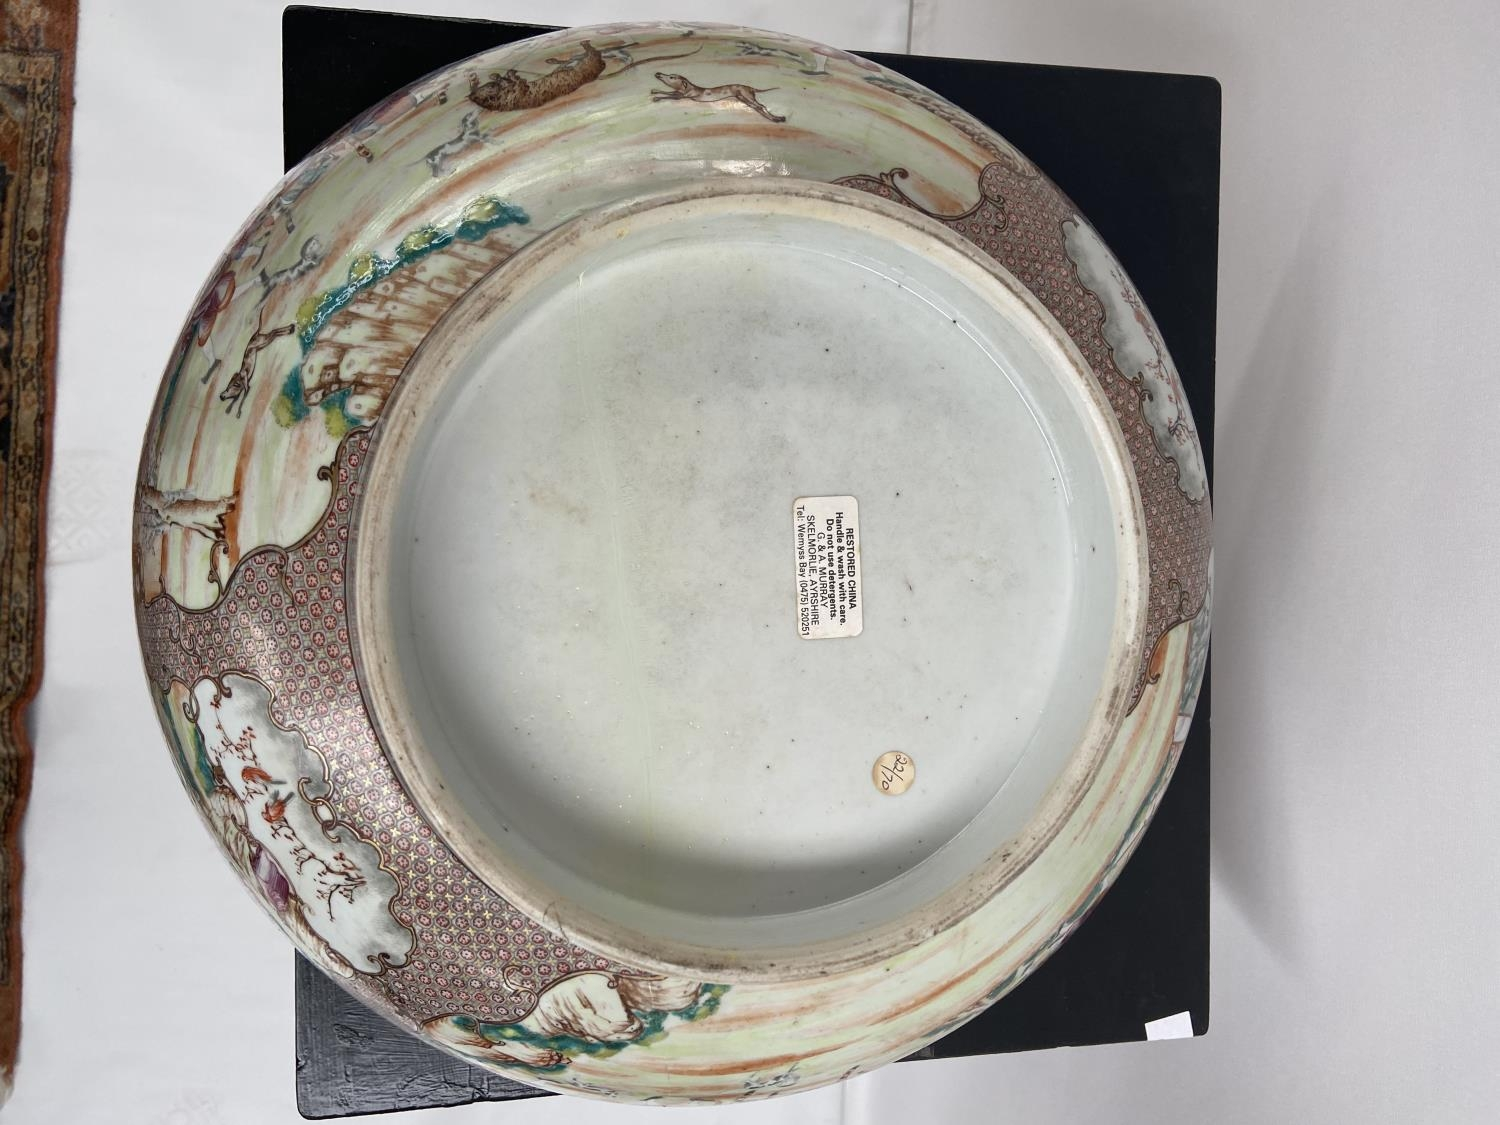 A LARGE 19TH CENTURY CHINESE HAND PAINTED BOWL. EXTERIOR DEPICTS CHINESE HUNTING SCENE PANELS. THE - Image 31 of 39